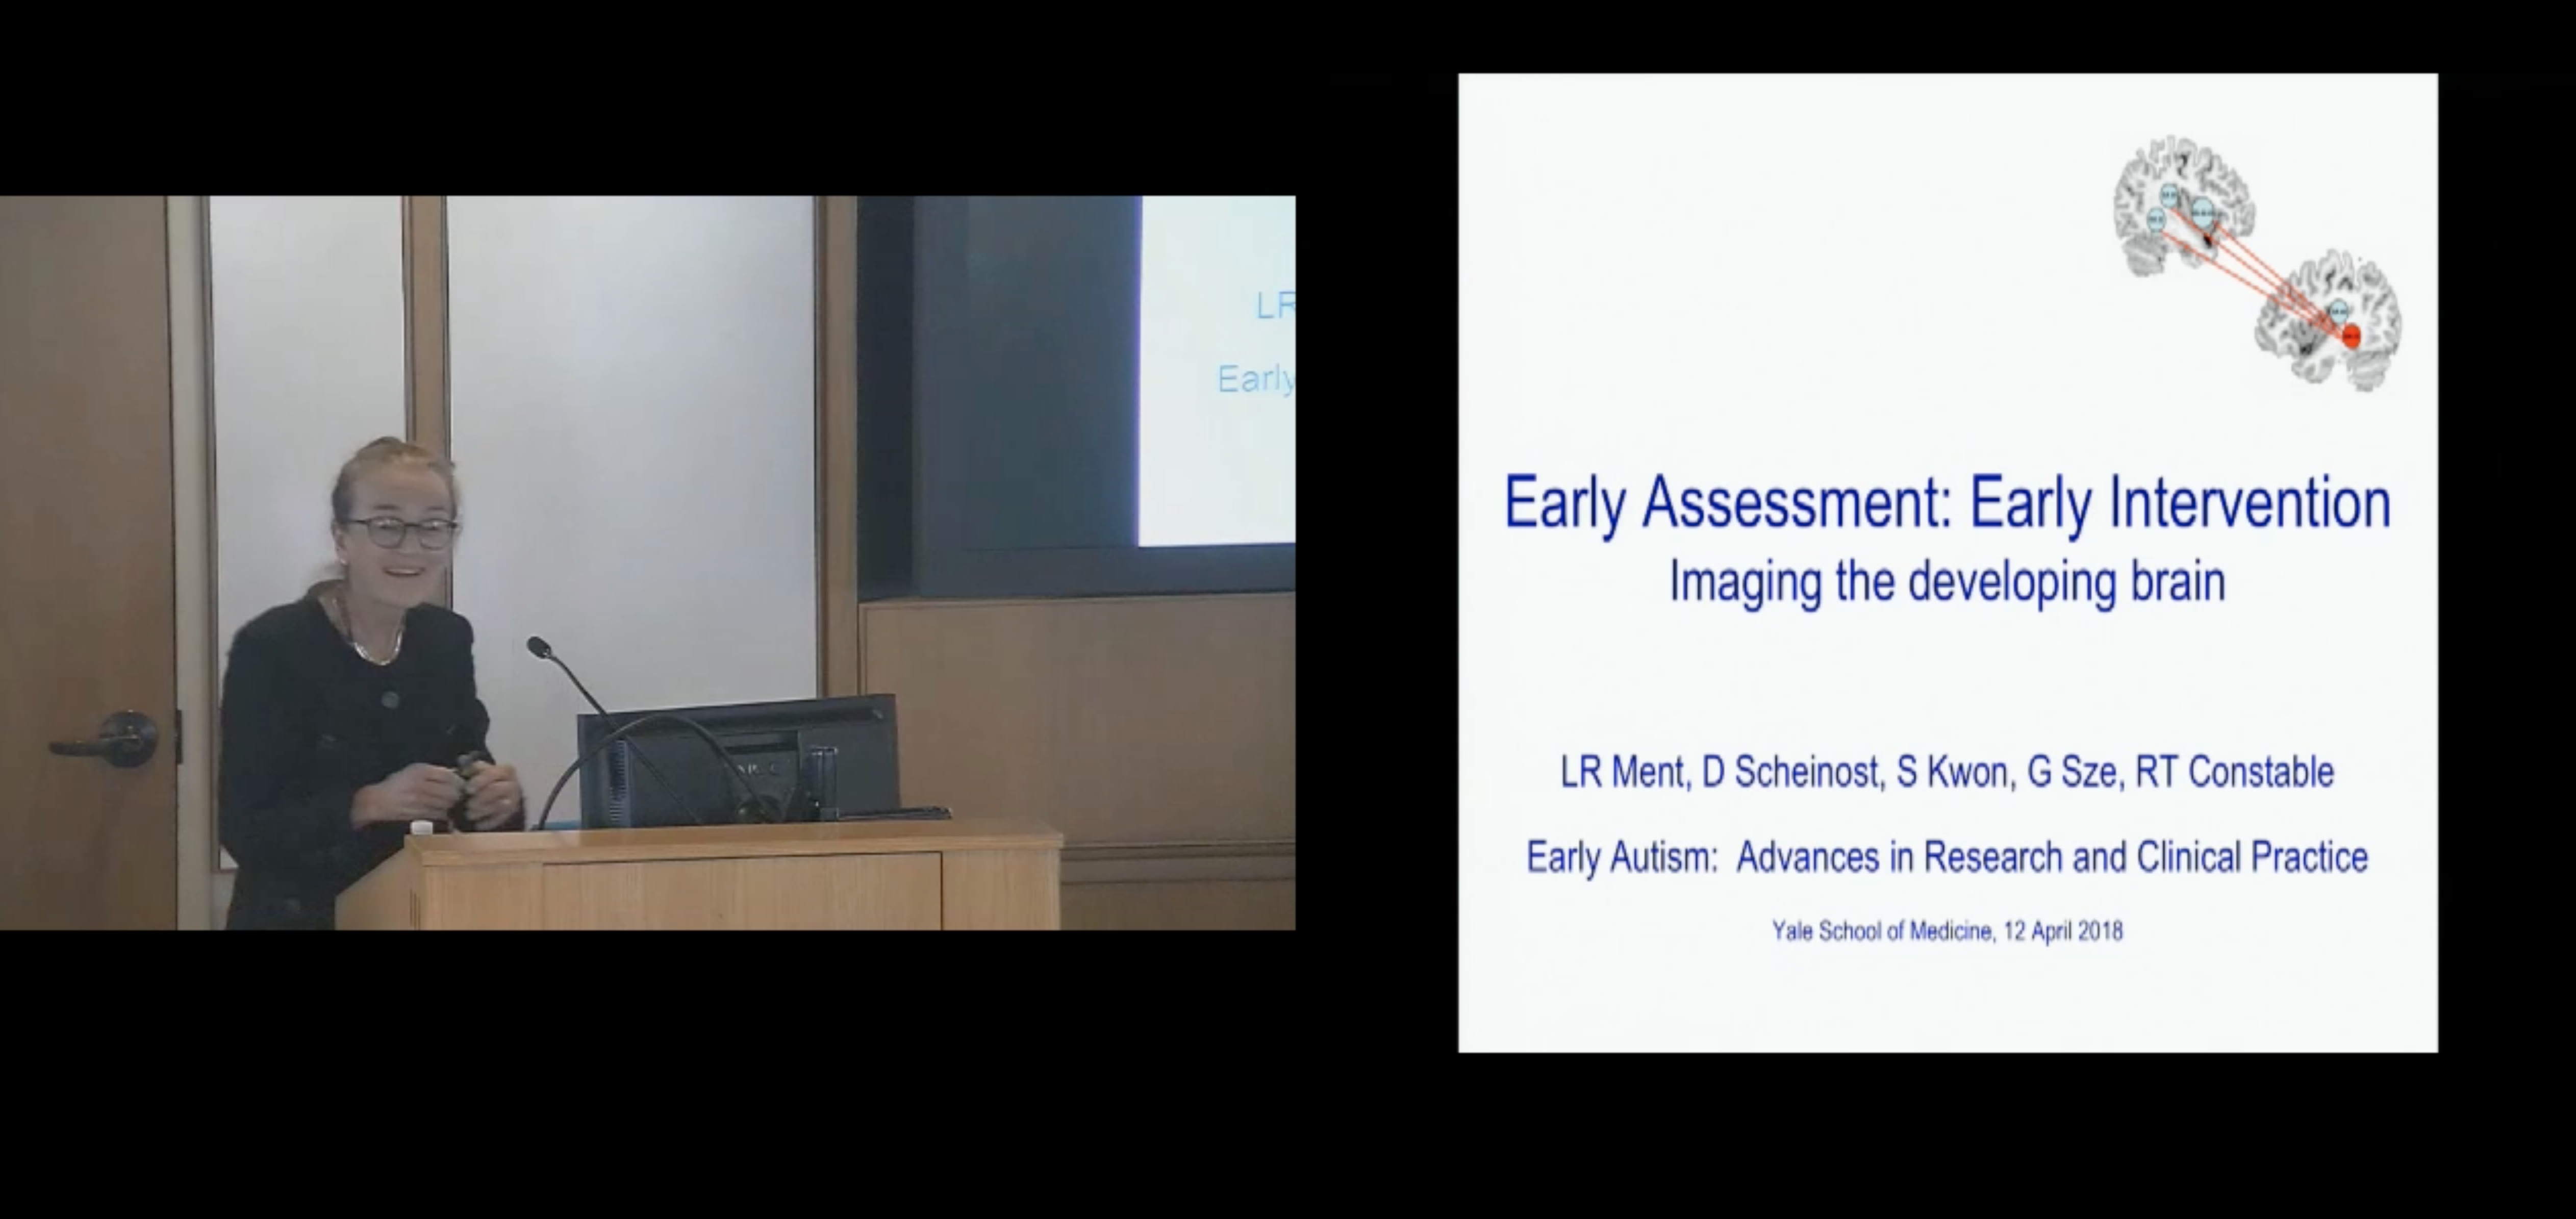 Early Assessment: Early Intervention Imaging the developing brain